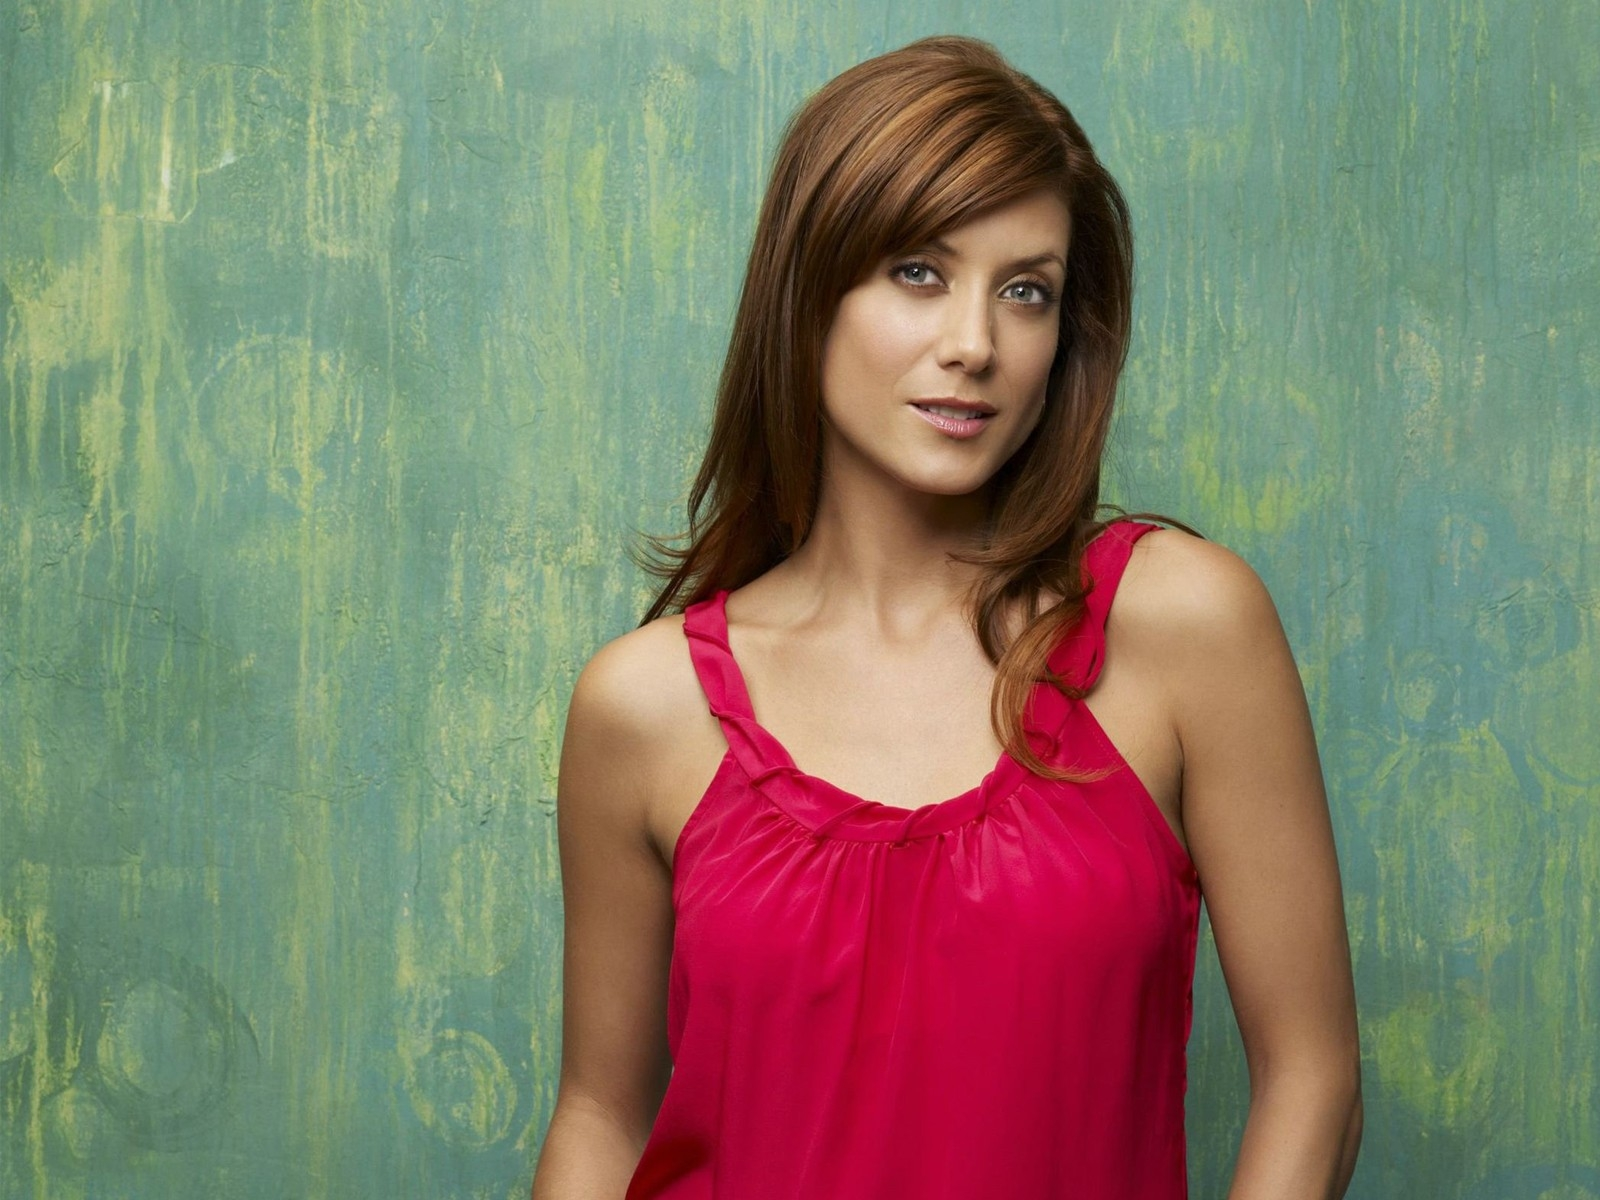 kate walsh wallpaper photos 64033